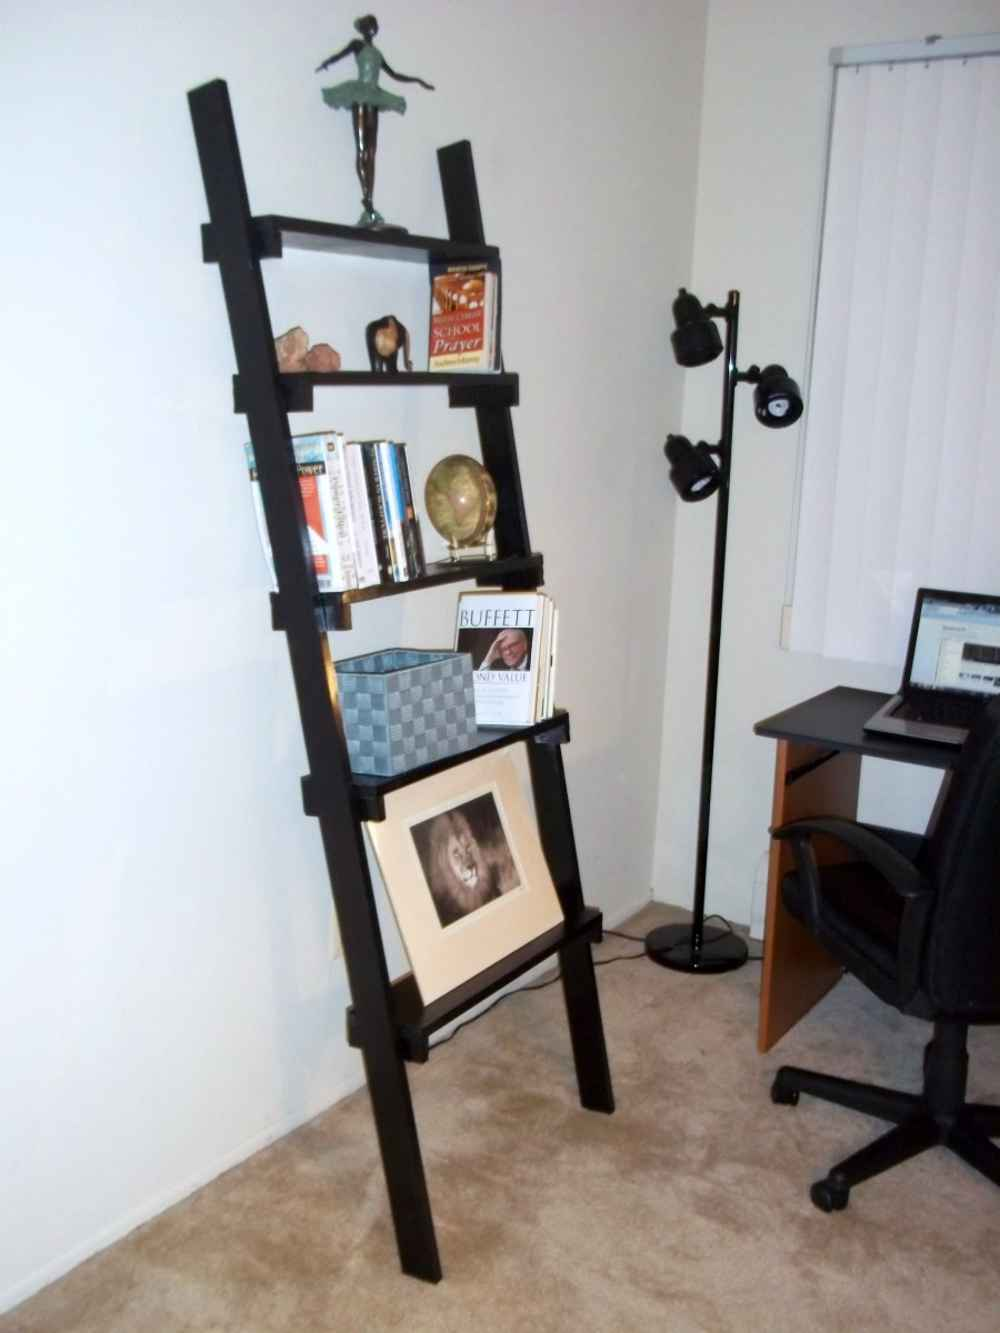 ladder bookshelf in black on brown tile floor matched with white wall plus desk and black chair for home office decor ideas